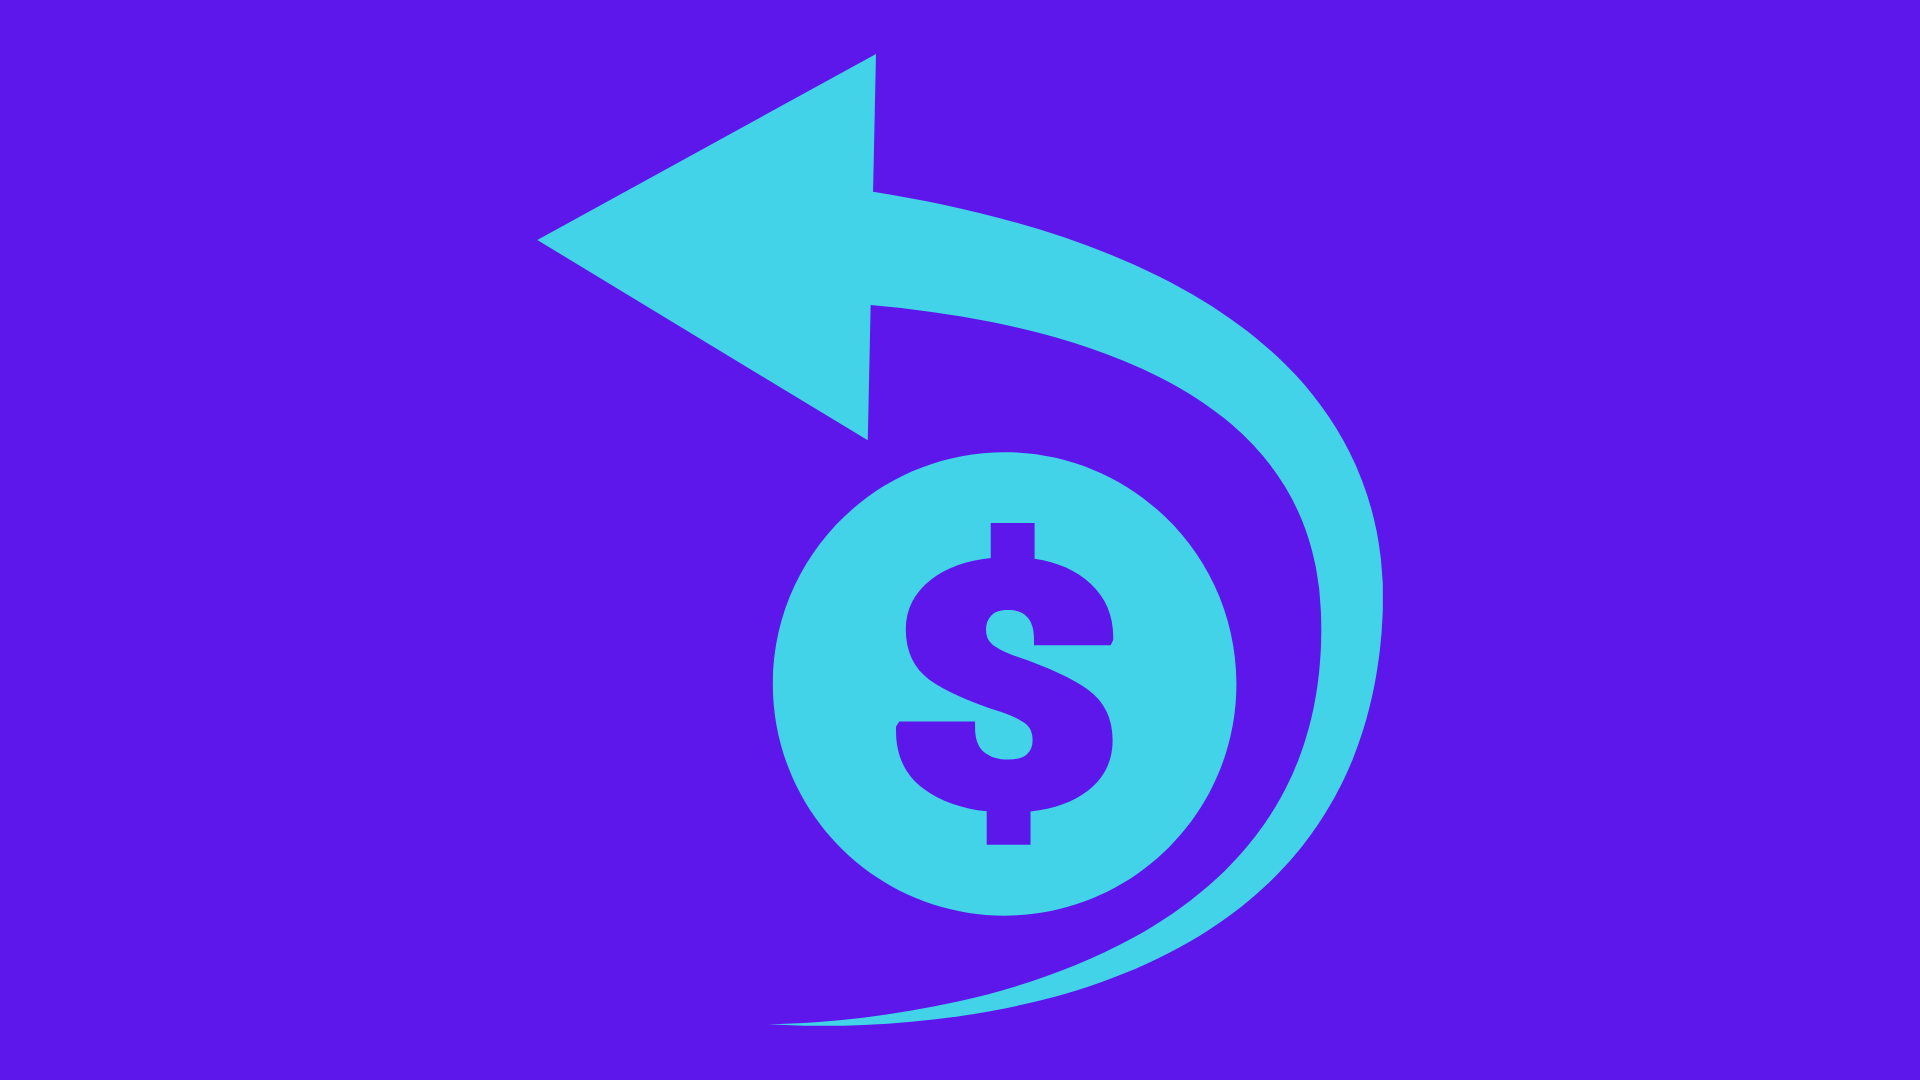 illustration of a dollar sign and an arrow illustrating return on investment